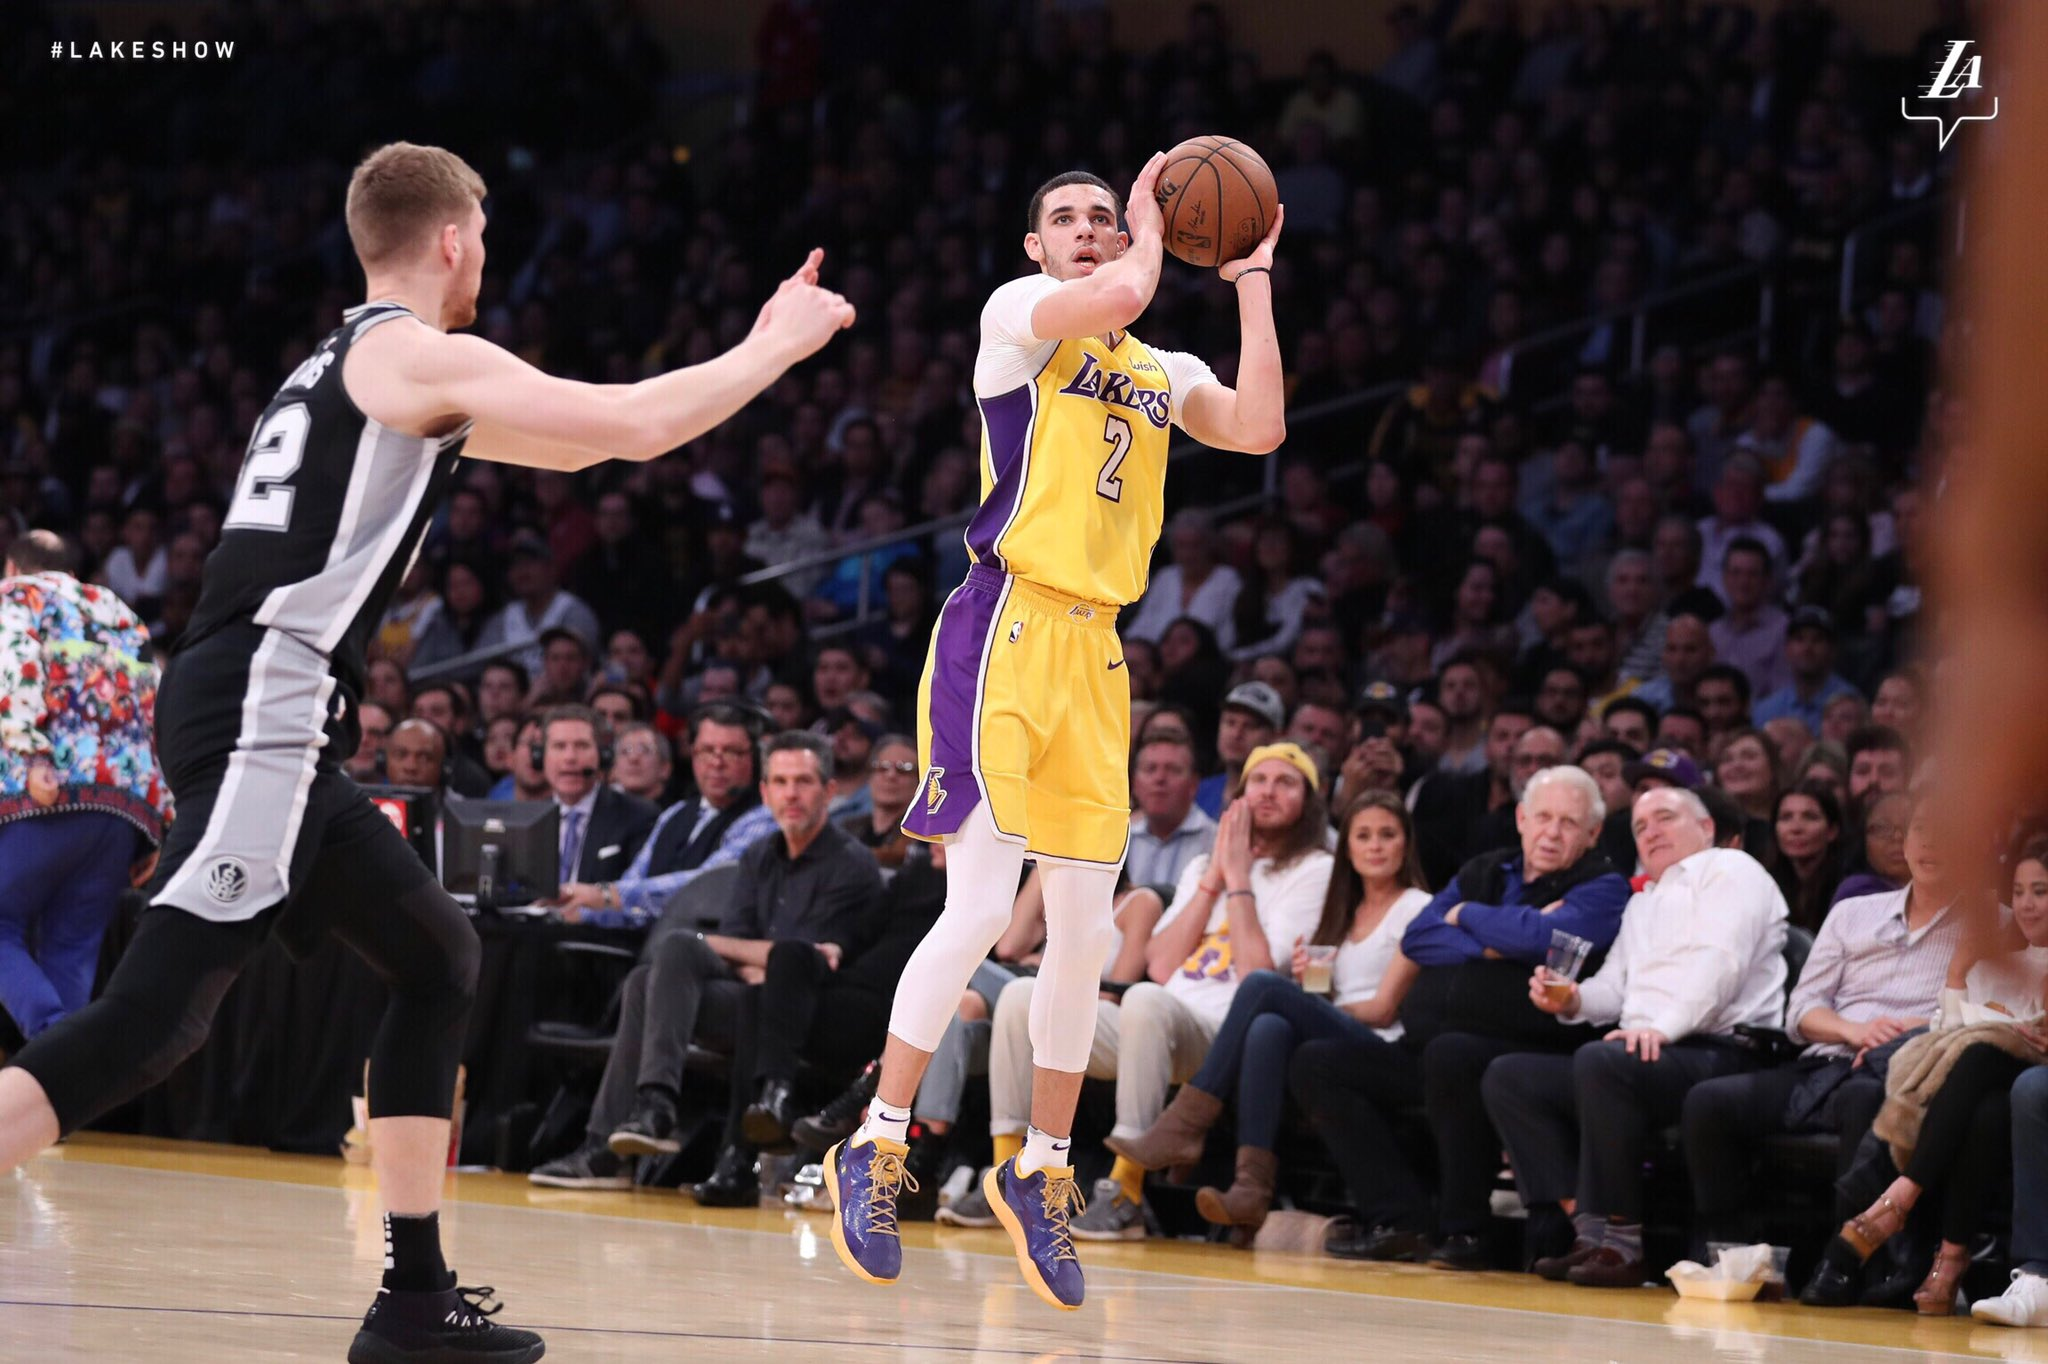 #3Ball  @ZO2_ #NBAVote  Retweets = Votes �� https://t.co/Pwi2FRkVHe